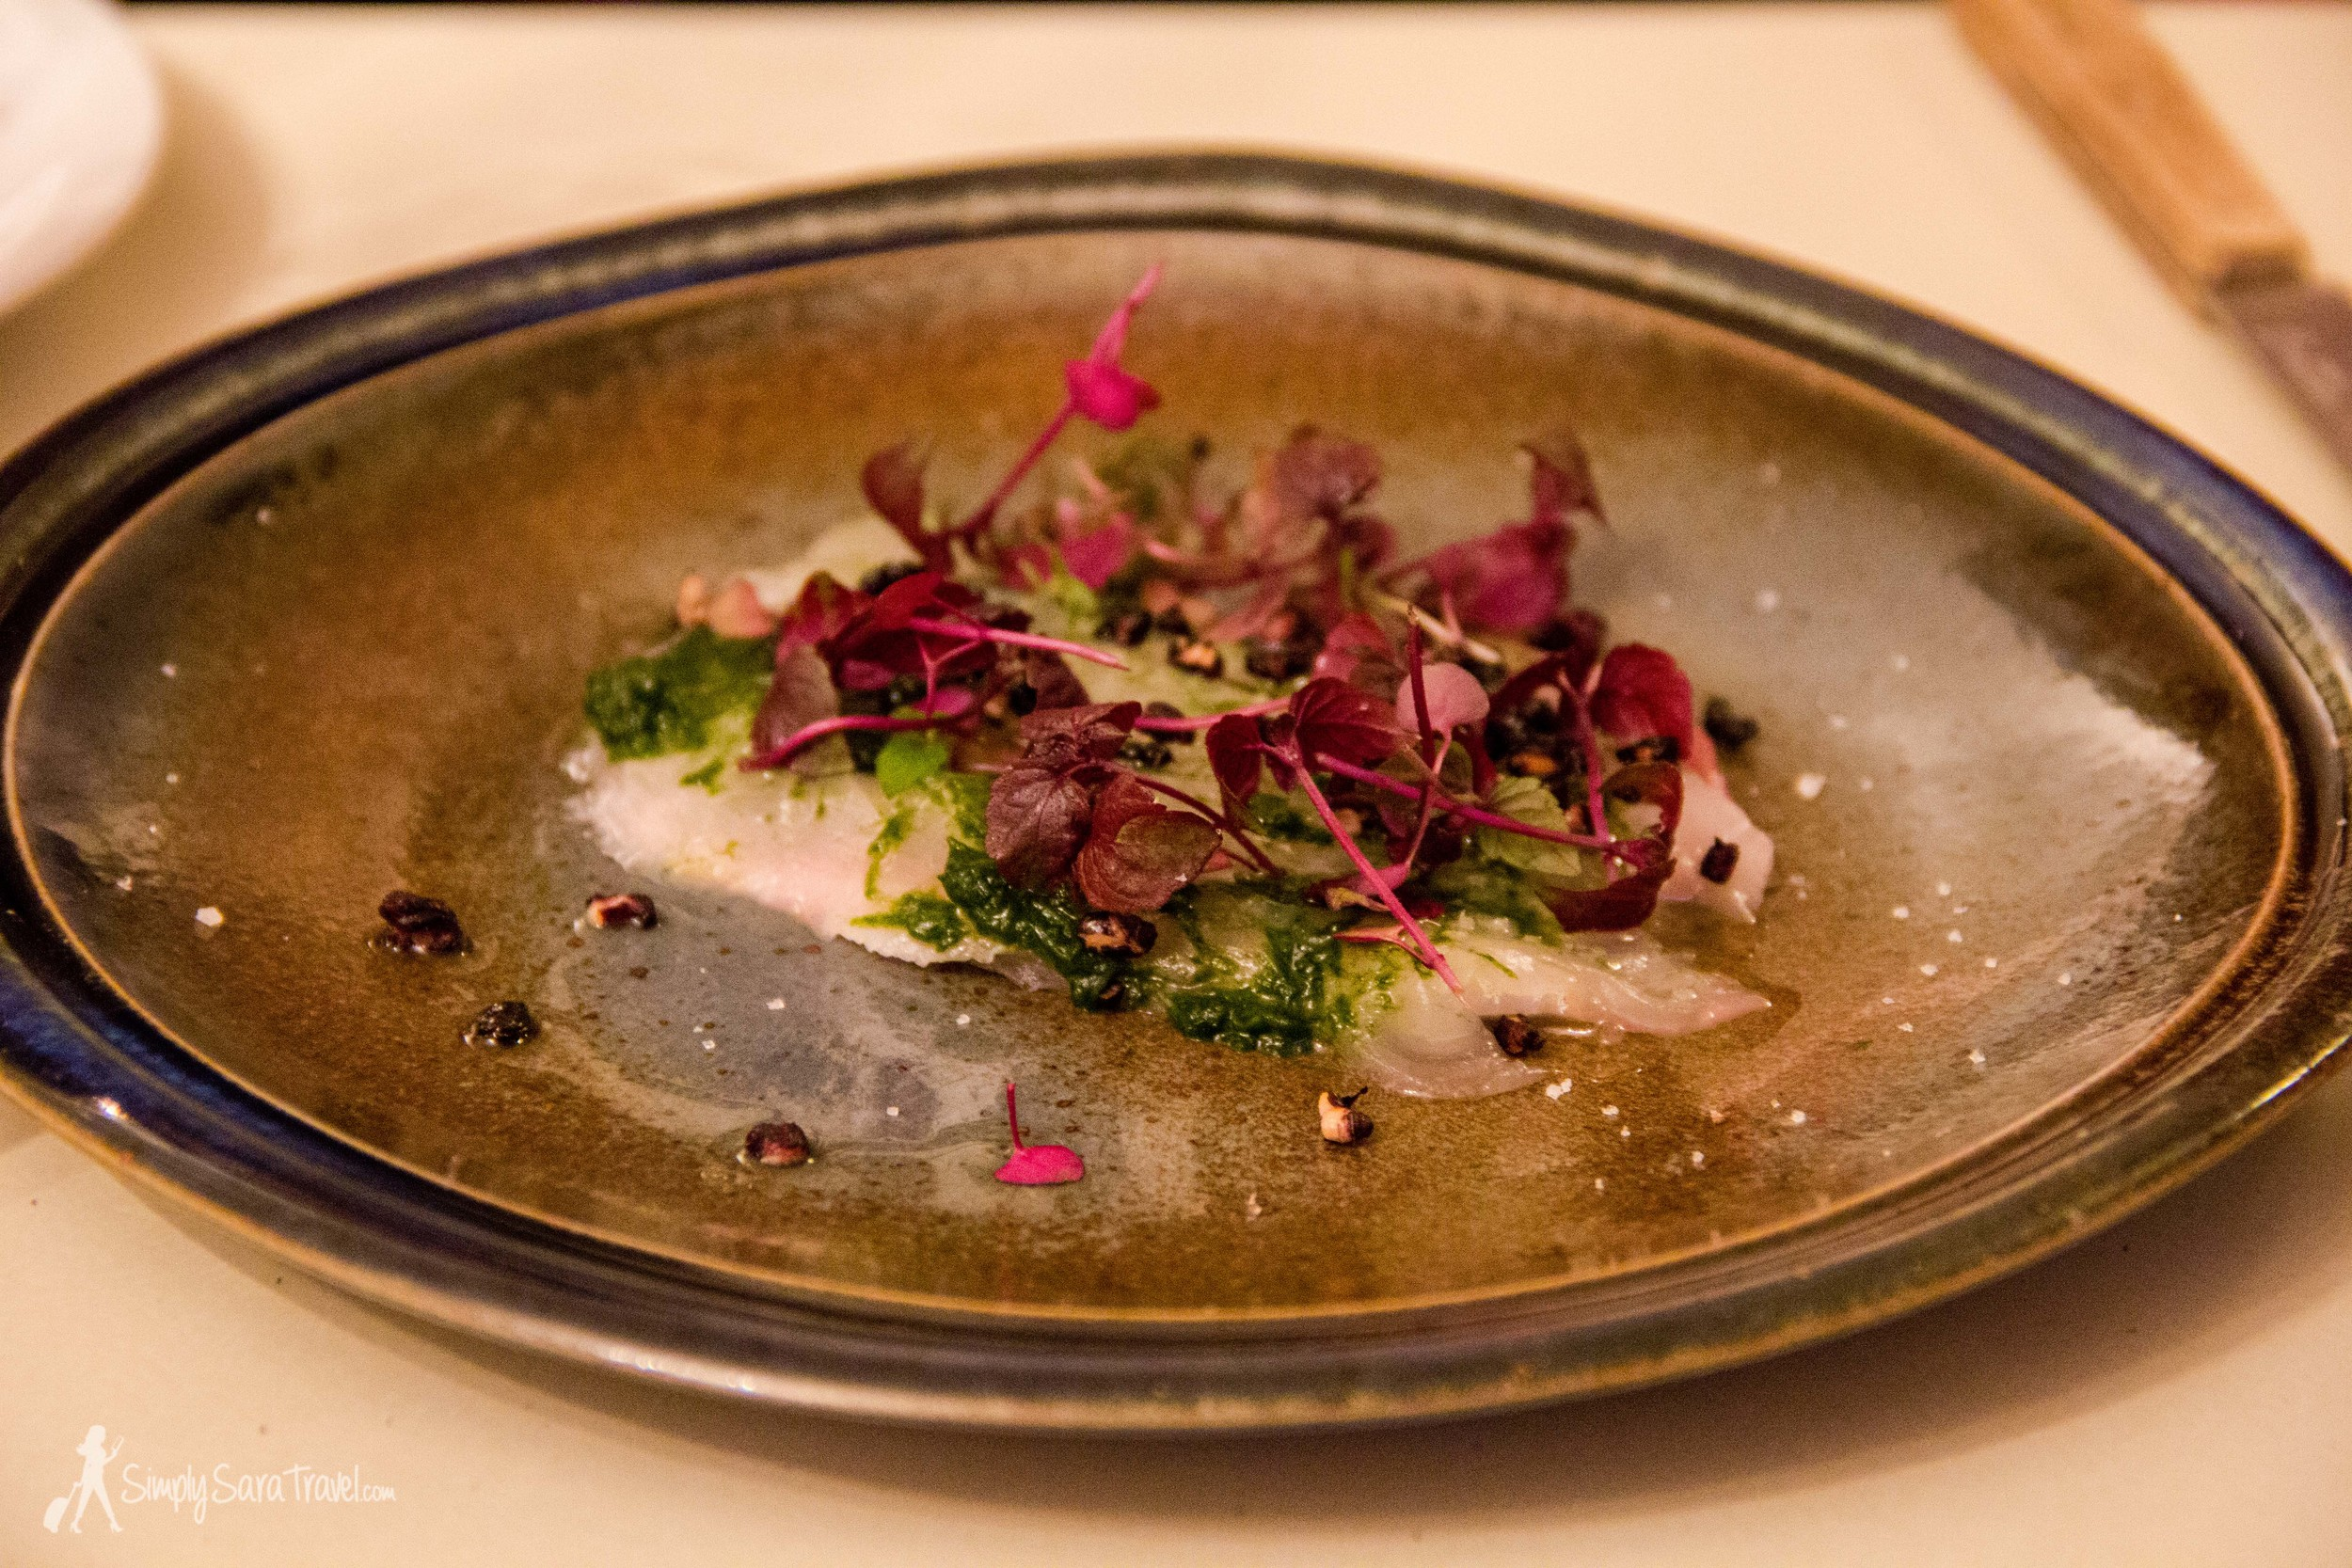 One of our many small plates - a fish dish